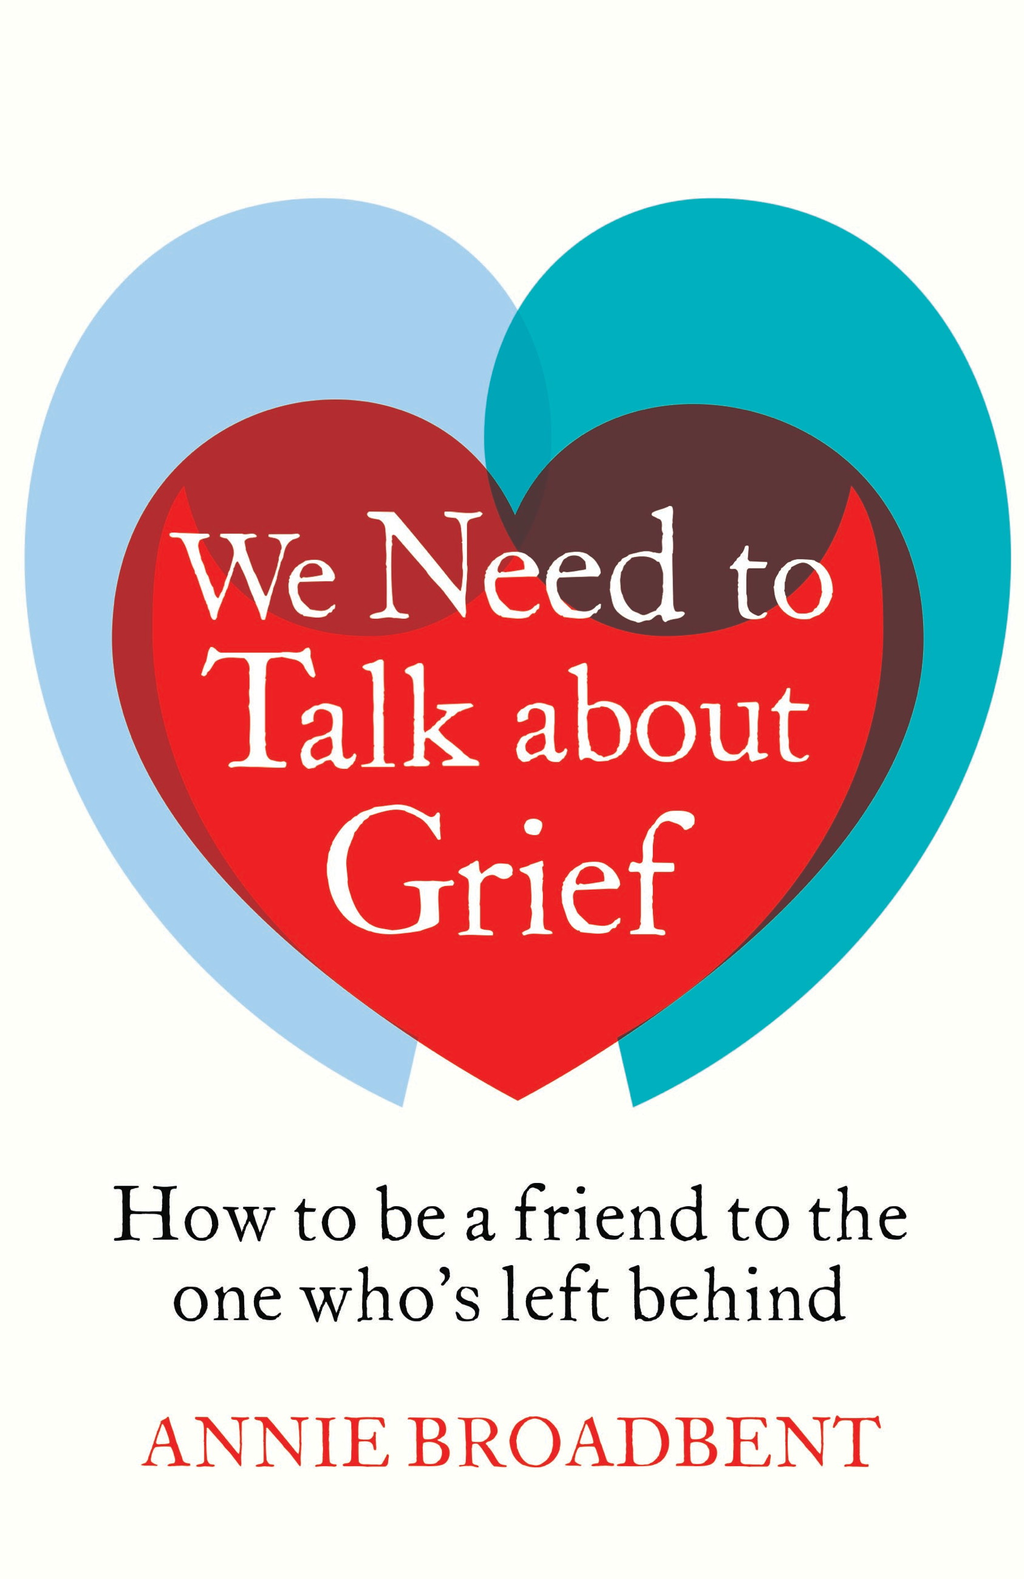 We Need to Talk About Grief How to be a friend to the one who's left behind